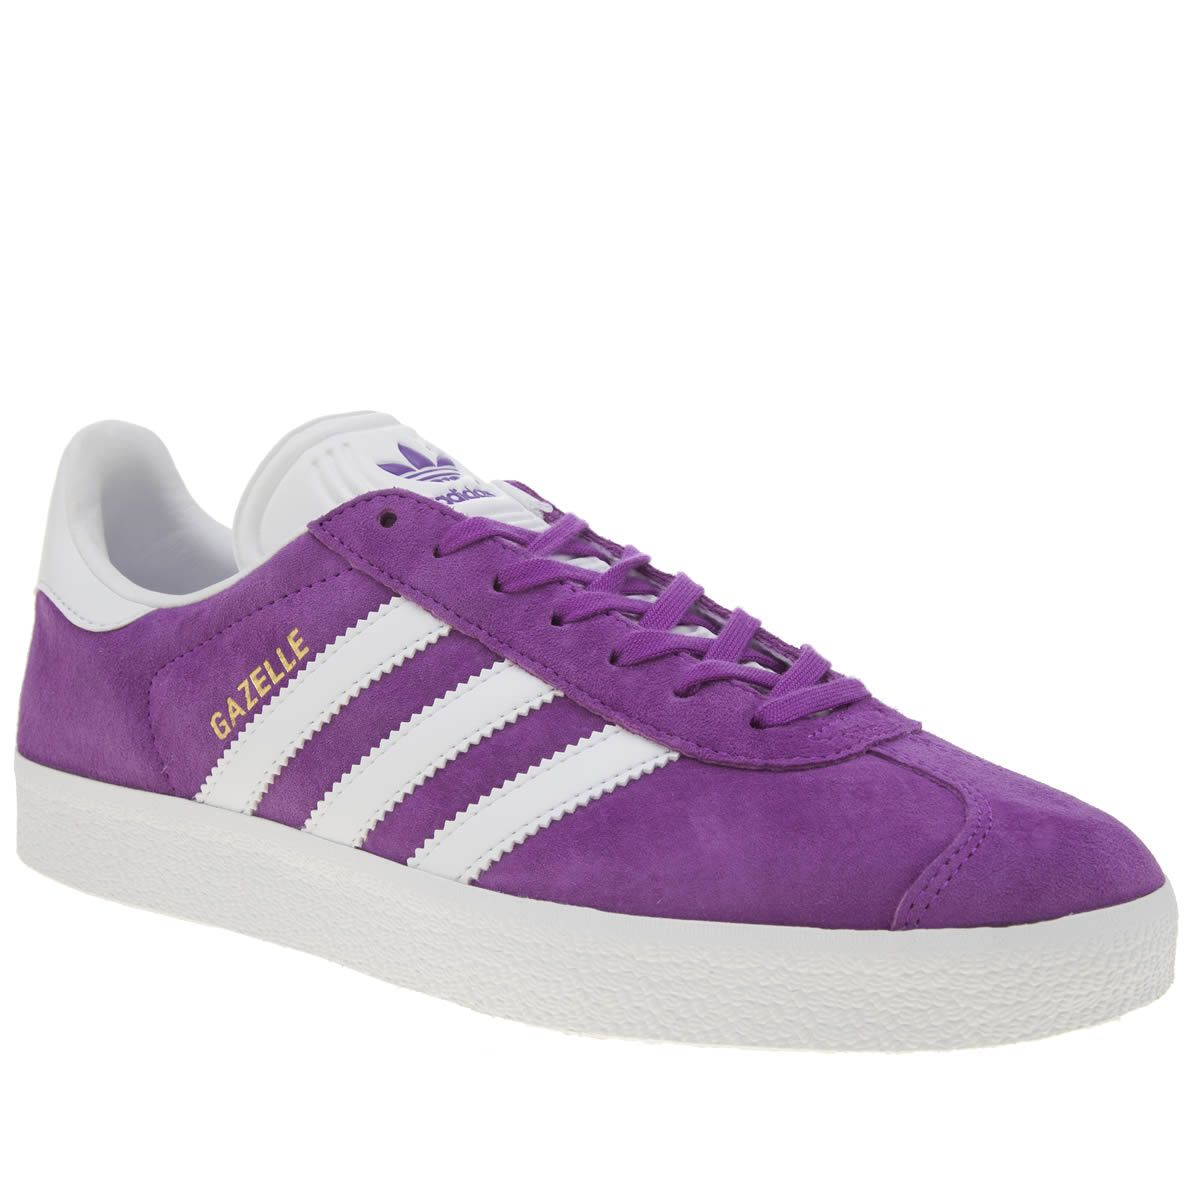 Purple Gazelle Suede, part of the Womens Adidas Trainers range available at  schuh with FREE delivery*.